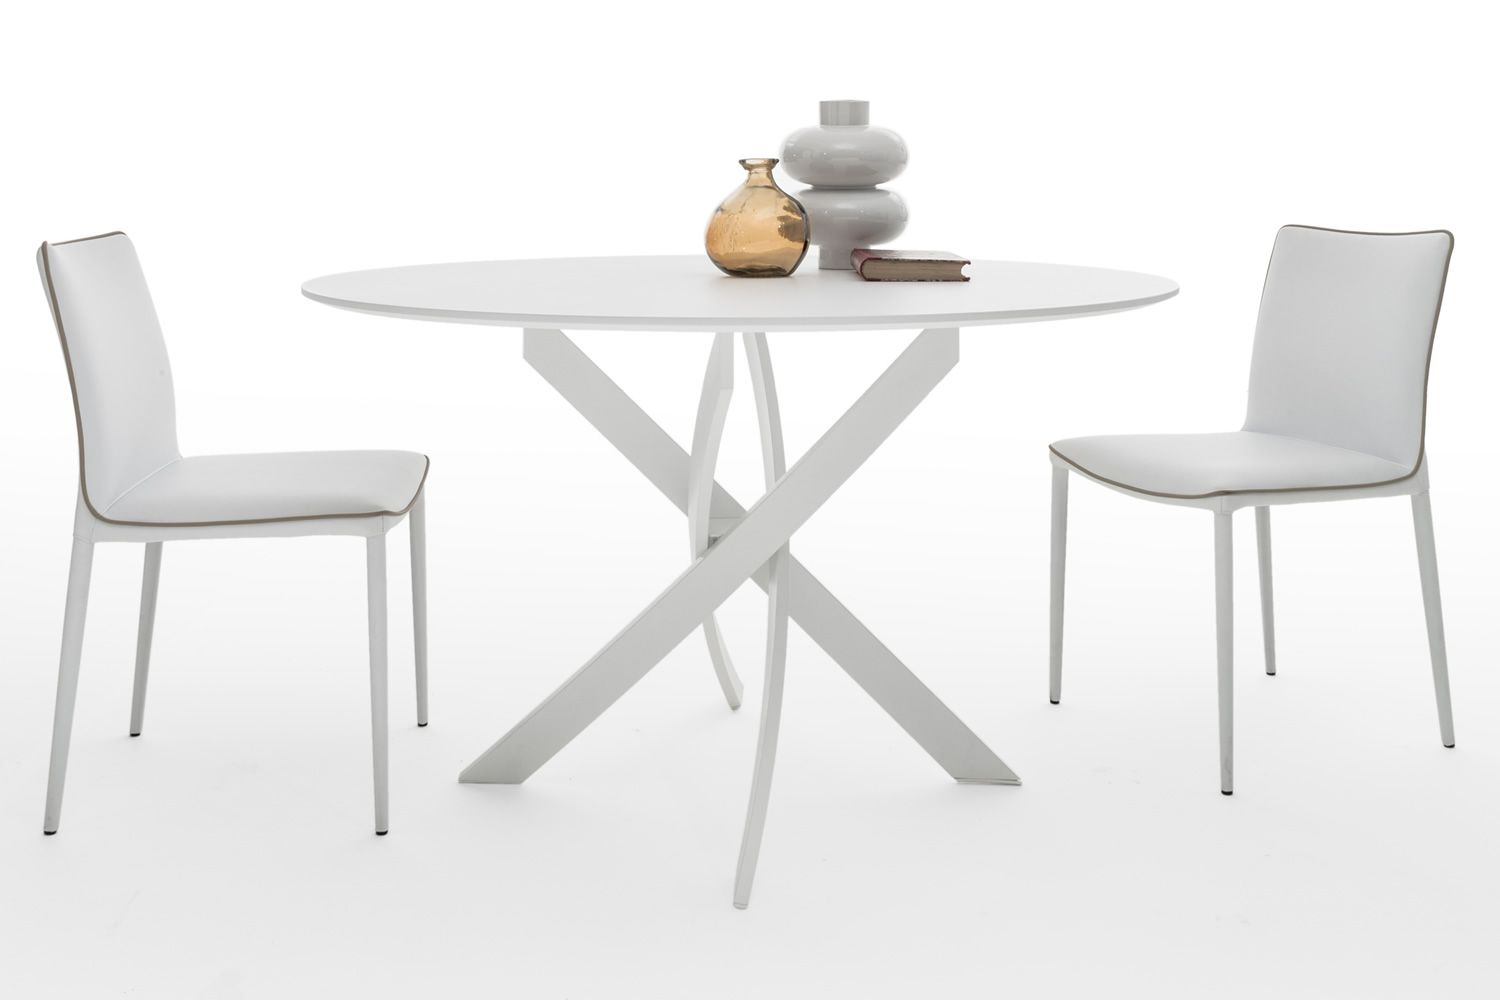 Barone: Design round table Bontempi Casa, fixed, in metal with glass ...